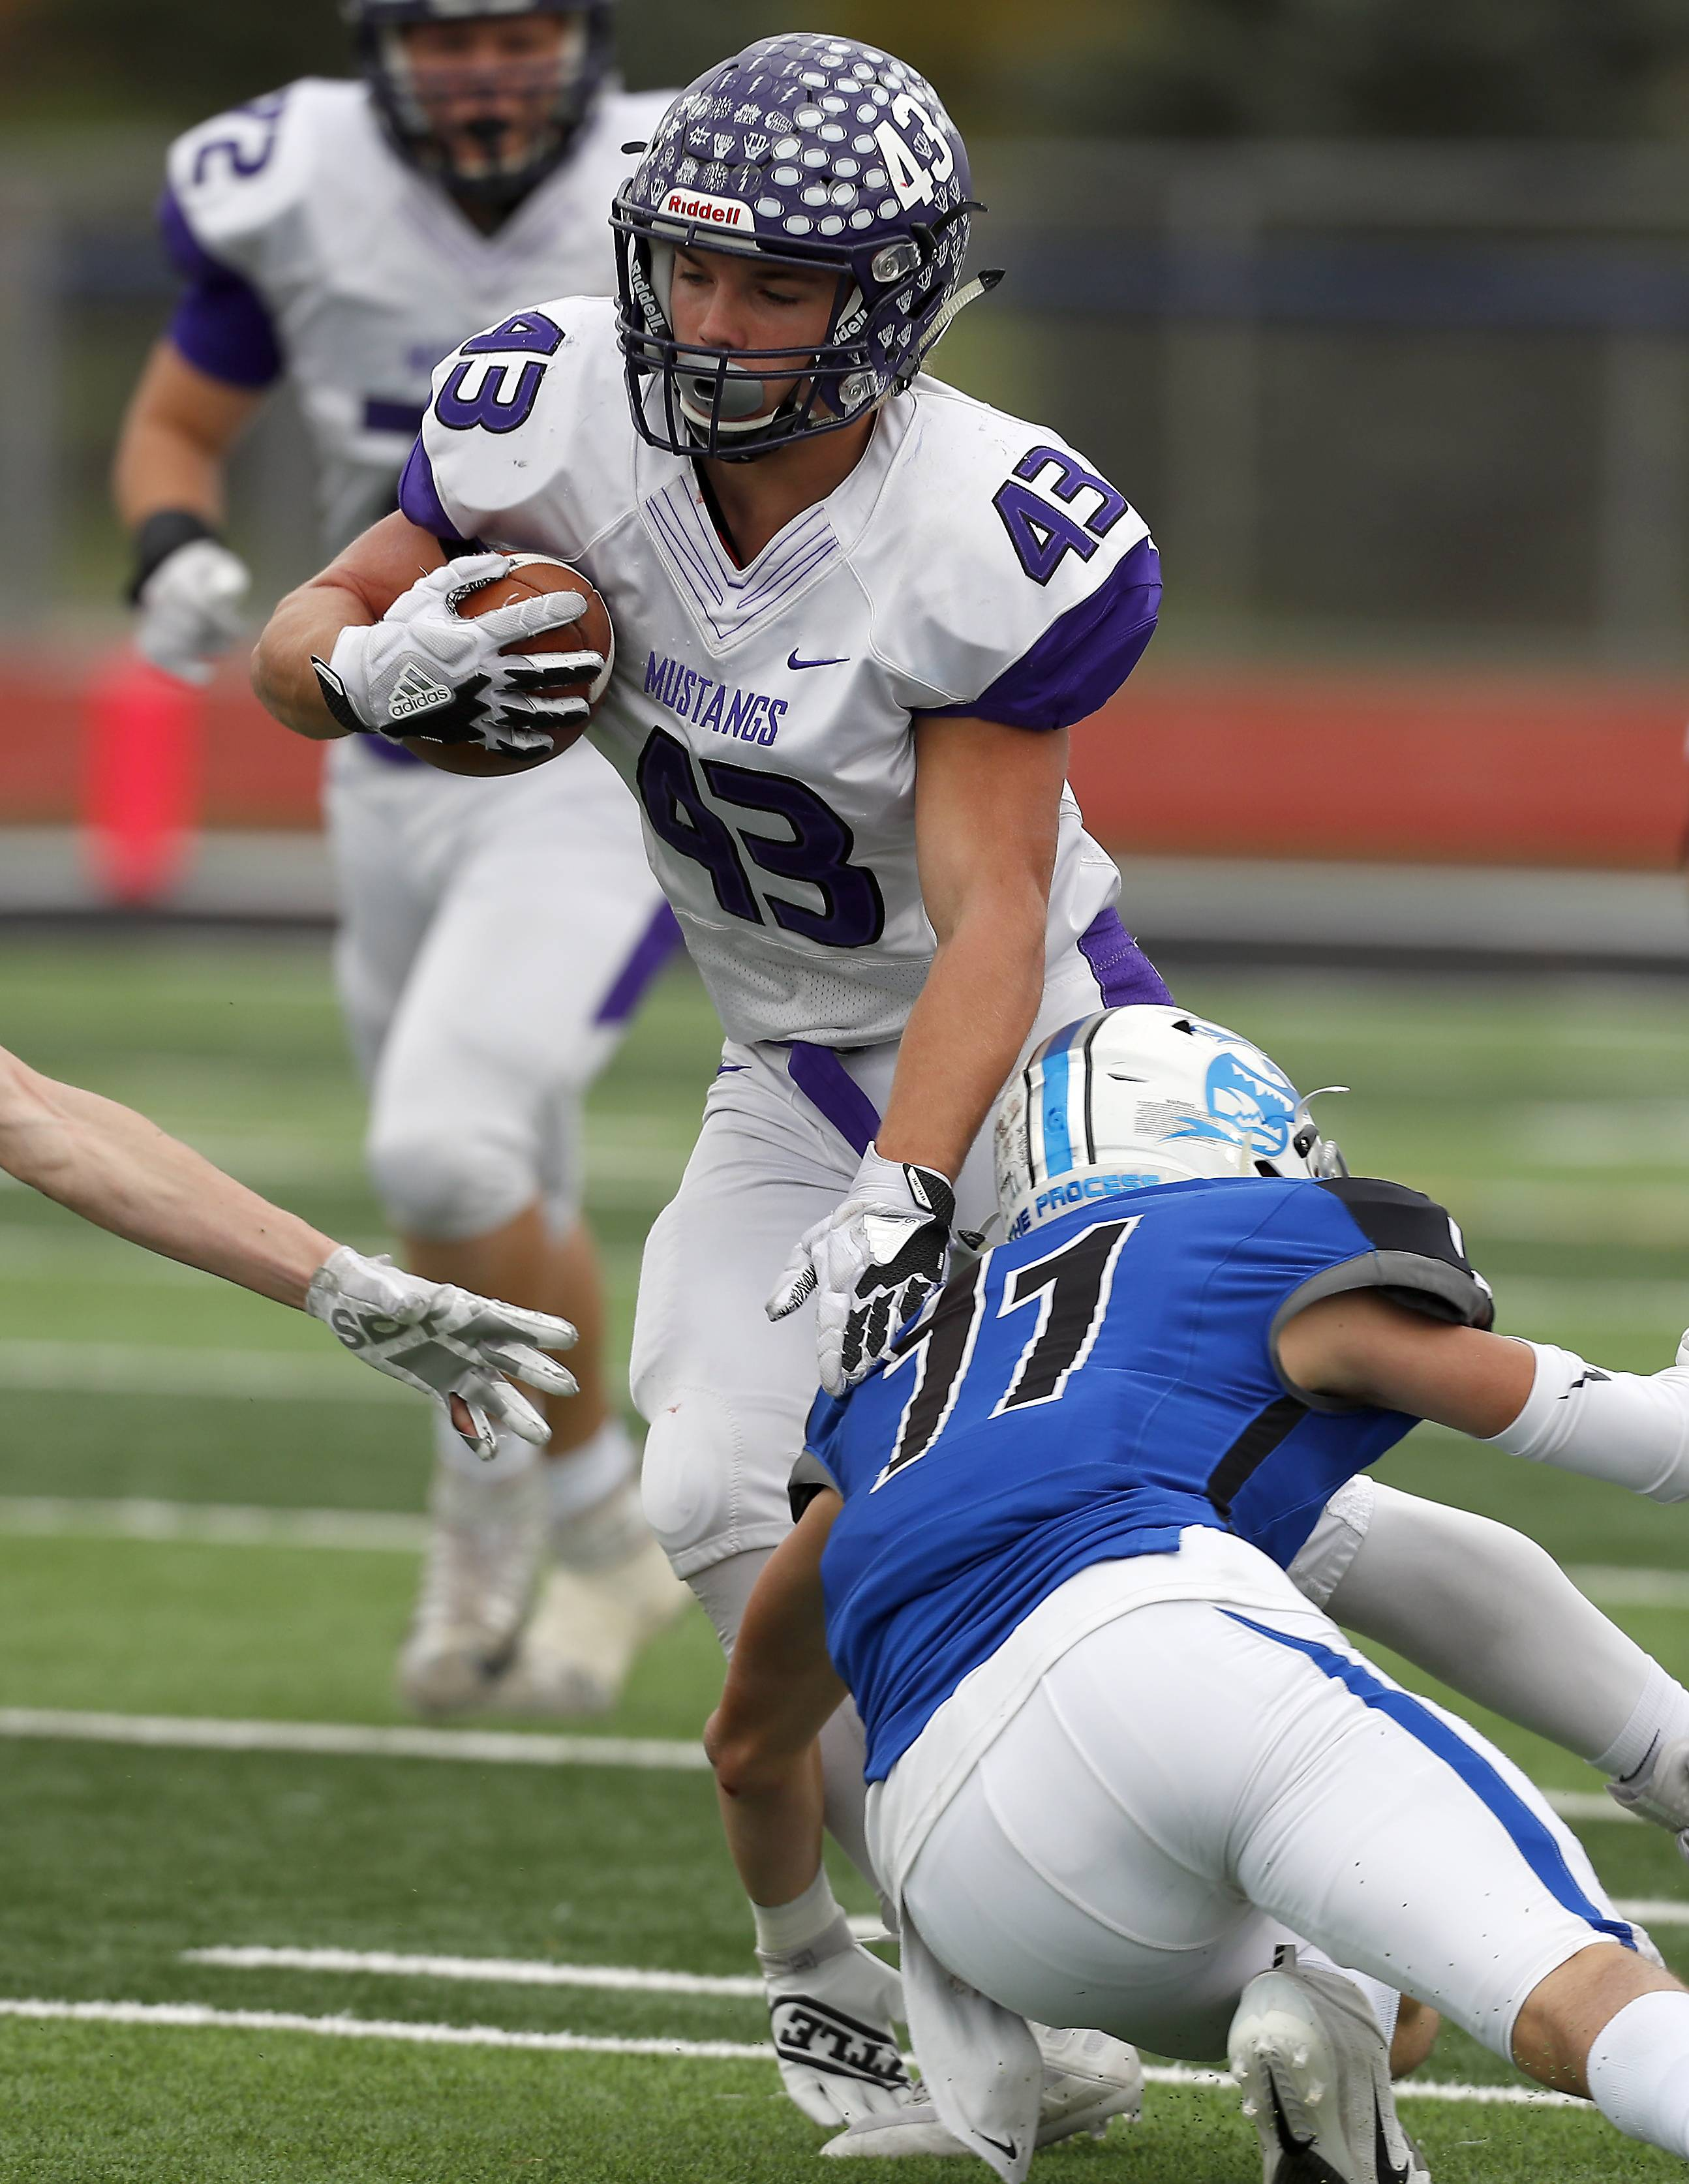 Rolling Meadows' Tymoteusz Szylak (C) (43) slides past St. Charles North's Ethan Romero (21) Saturday during IHSA Class 7A playoff football in St. Charles.